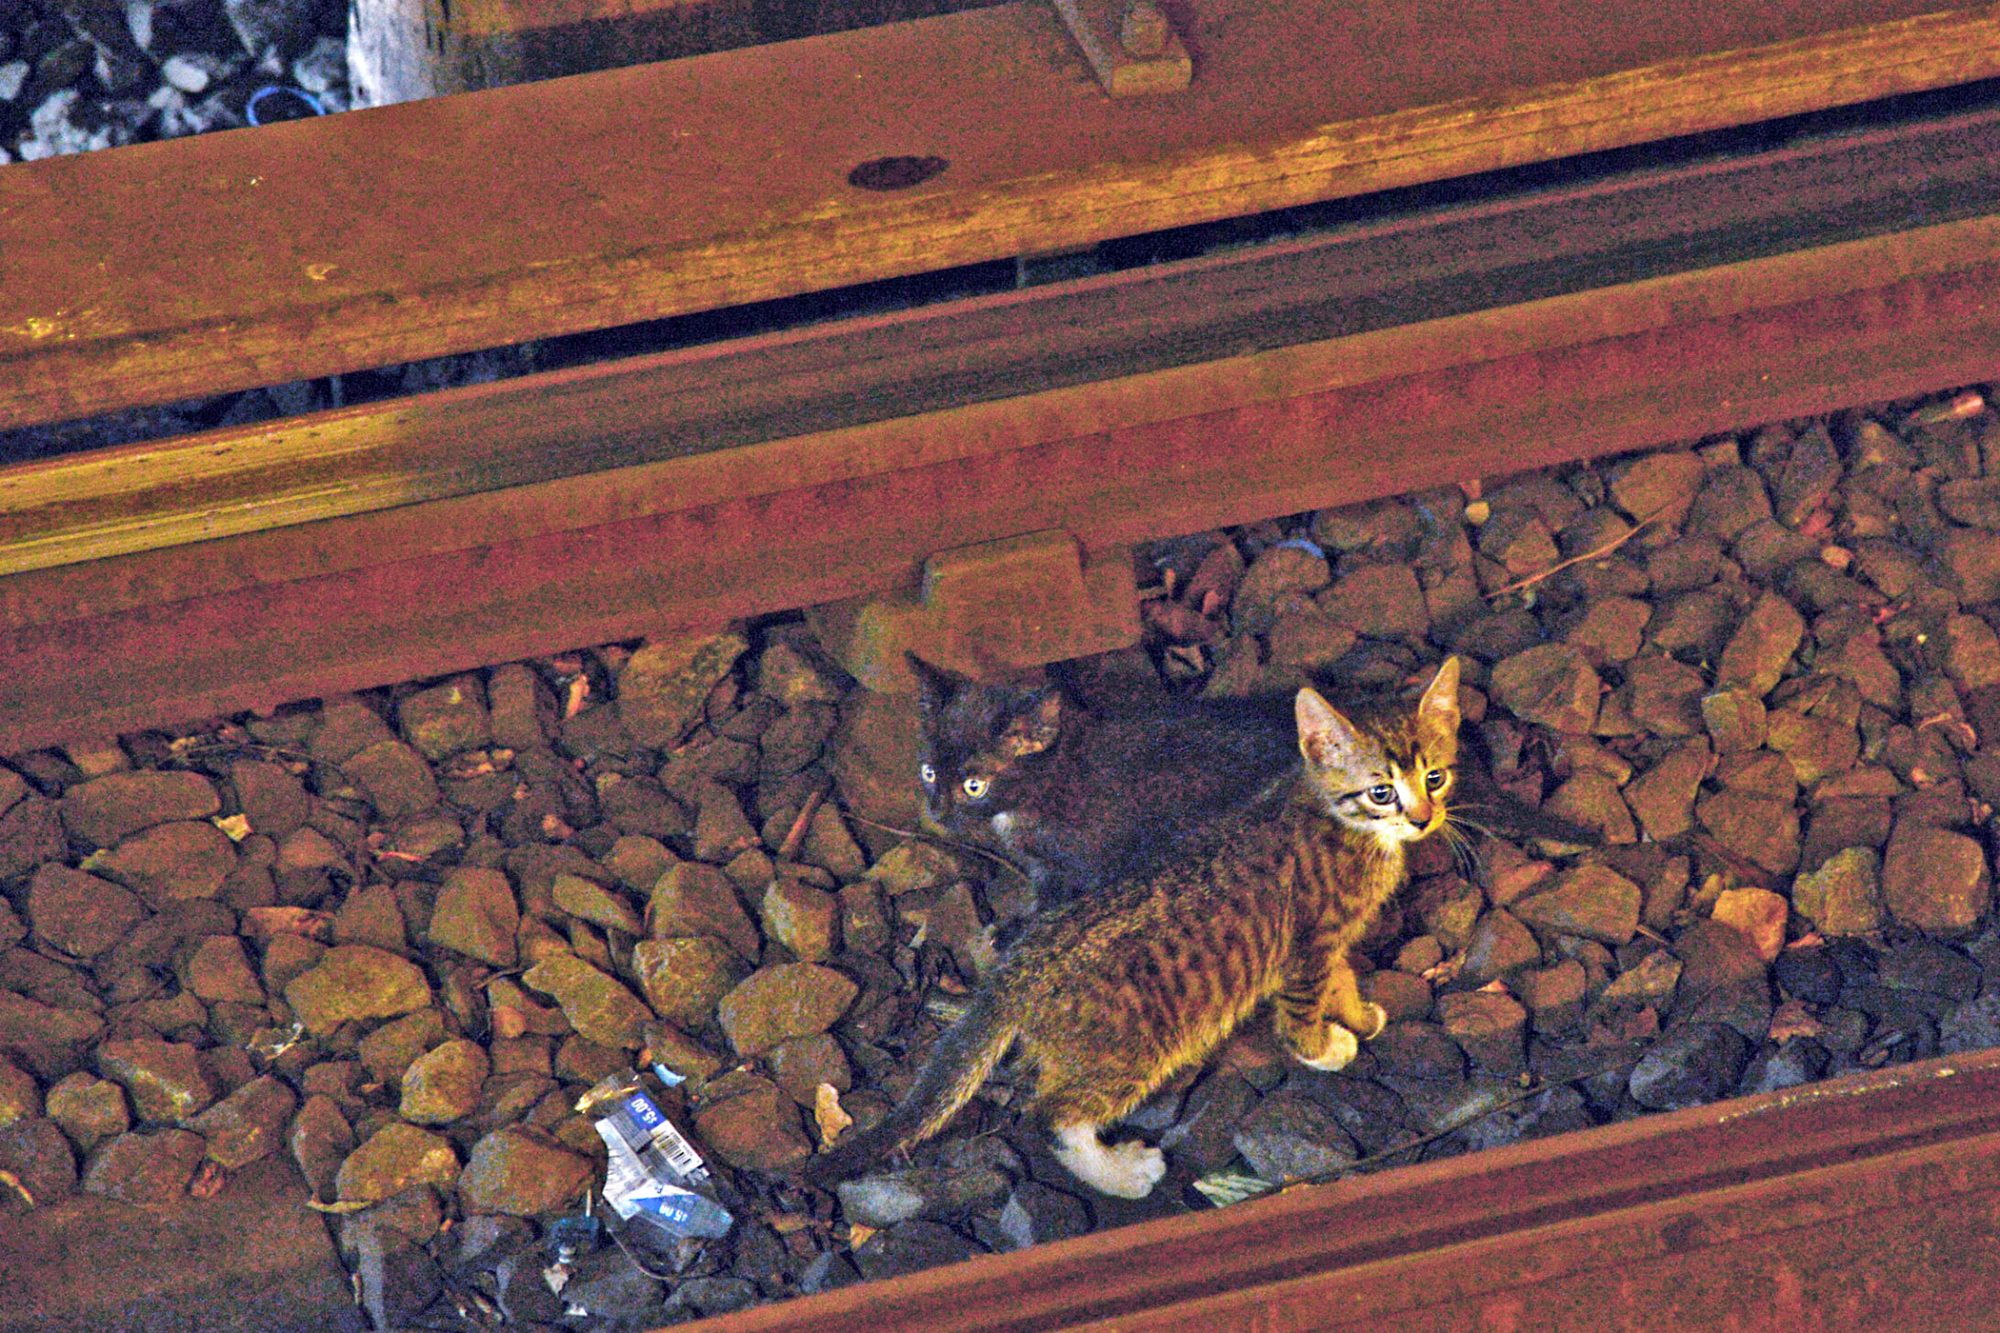 Small kitten stands in middle of train tracks